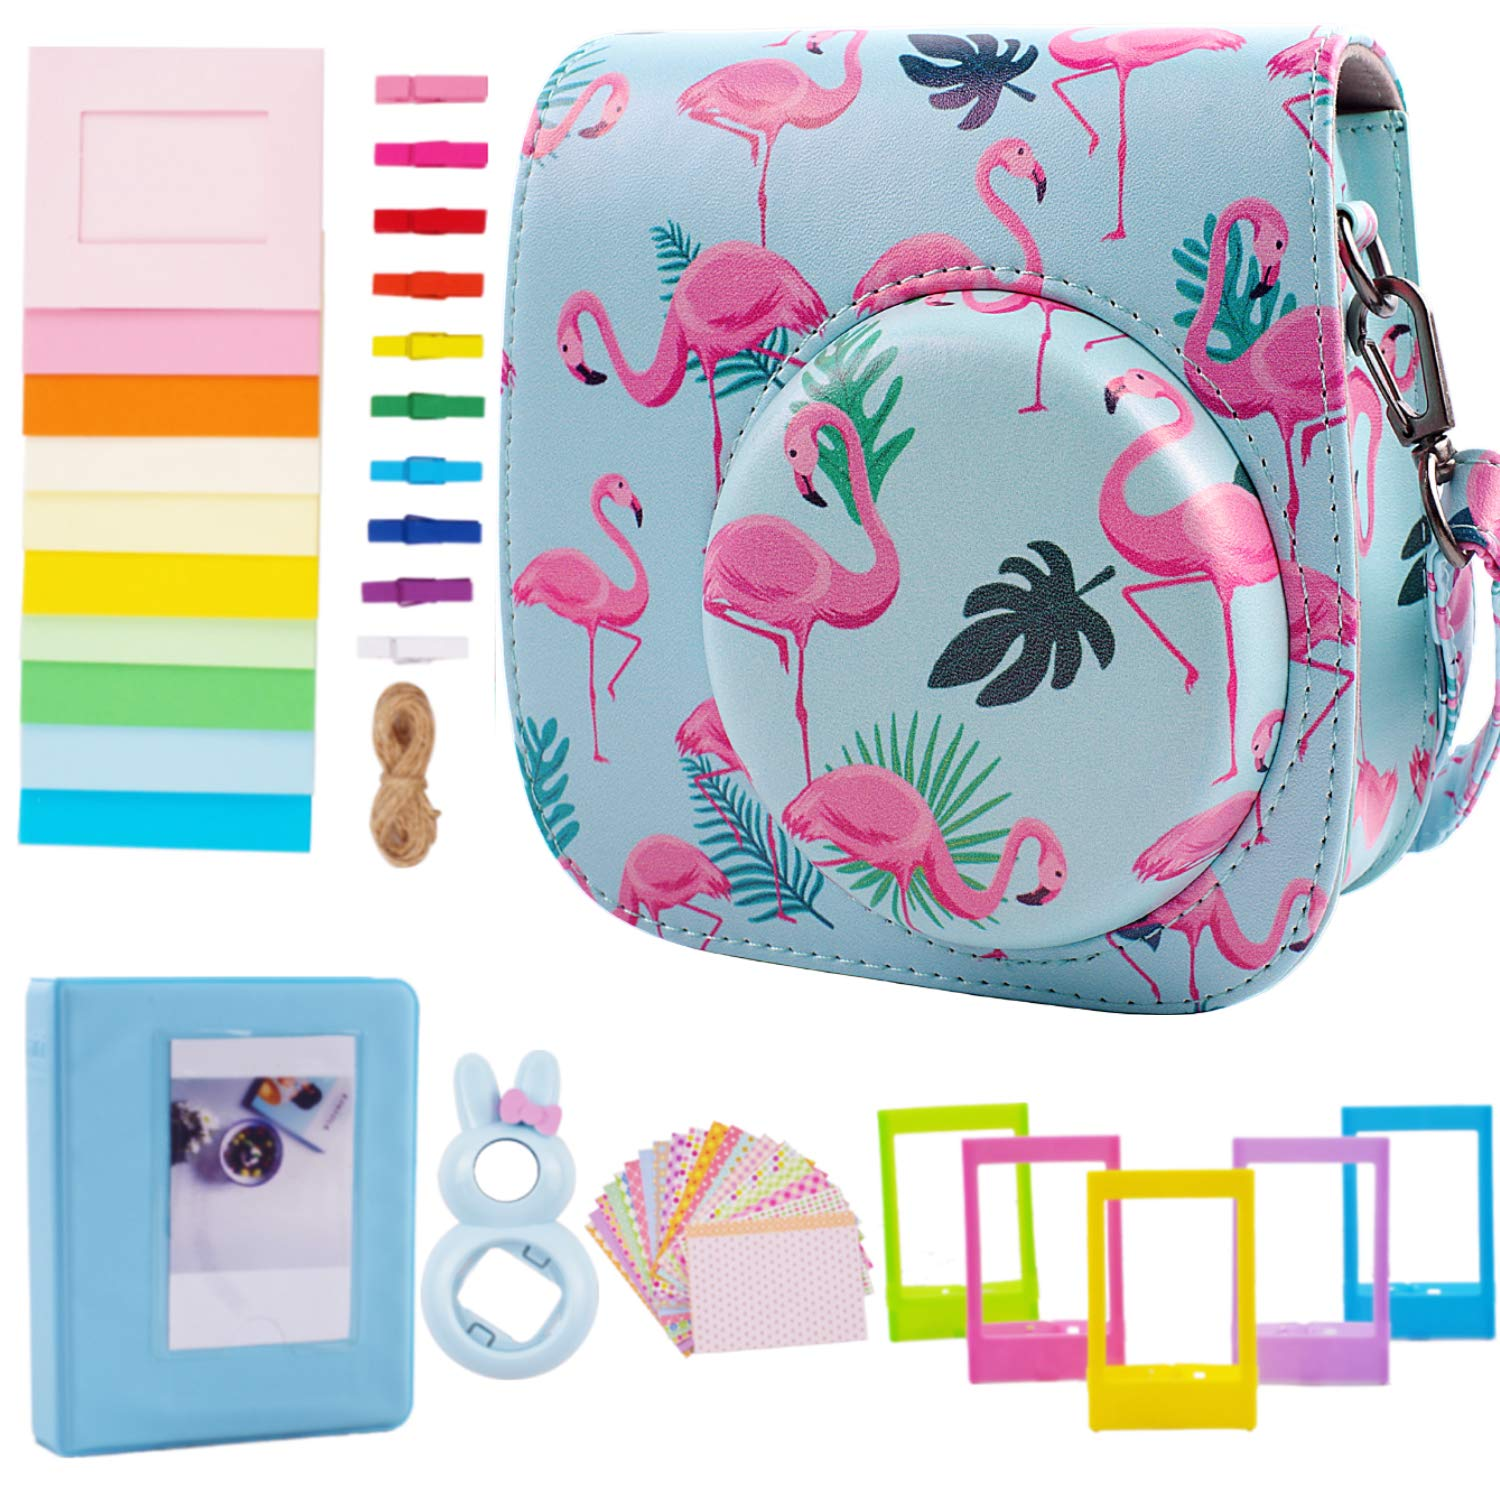 Case & Accessories Compatible with Fujifilm Instax Mini 9/8/ 8+ Instant Polaroid Film Camera, Bundle Pack Include Album, Selfie Lens & Other Accessories [Flamingo,6 Items Kit] by SAIKA